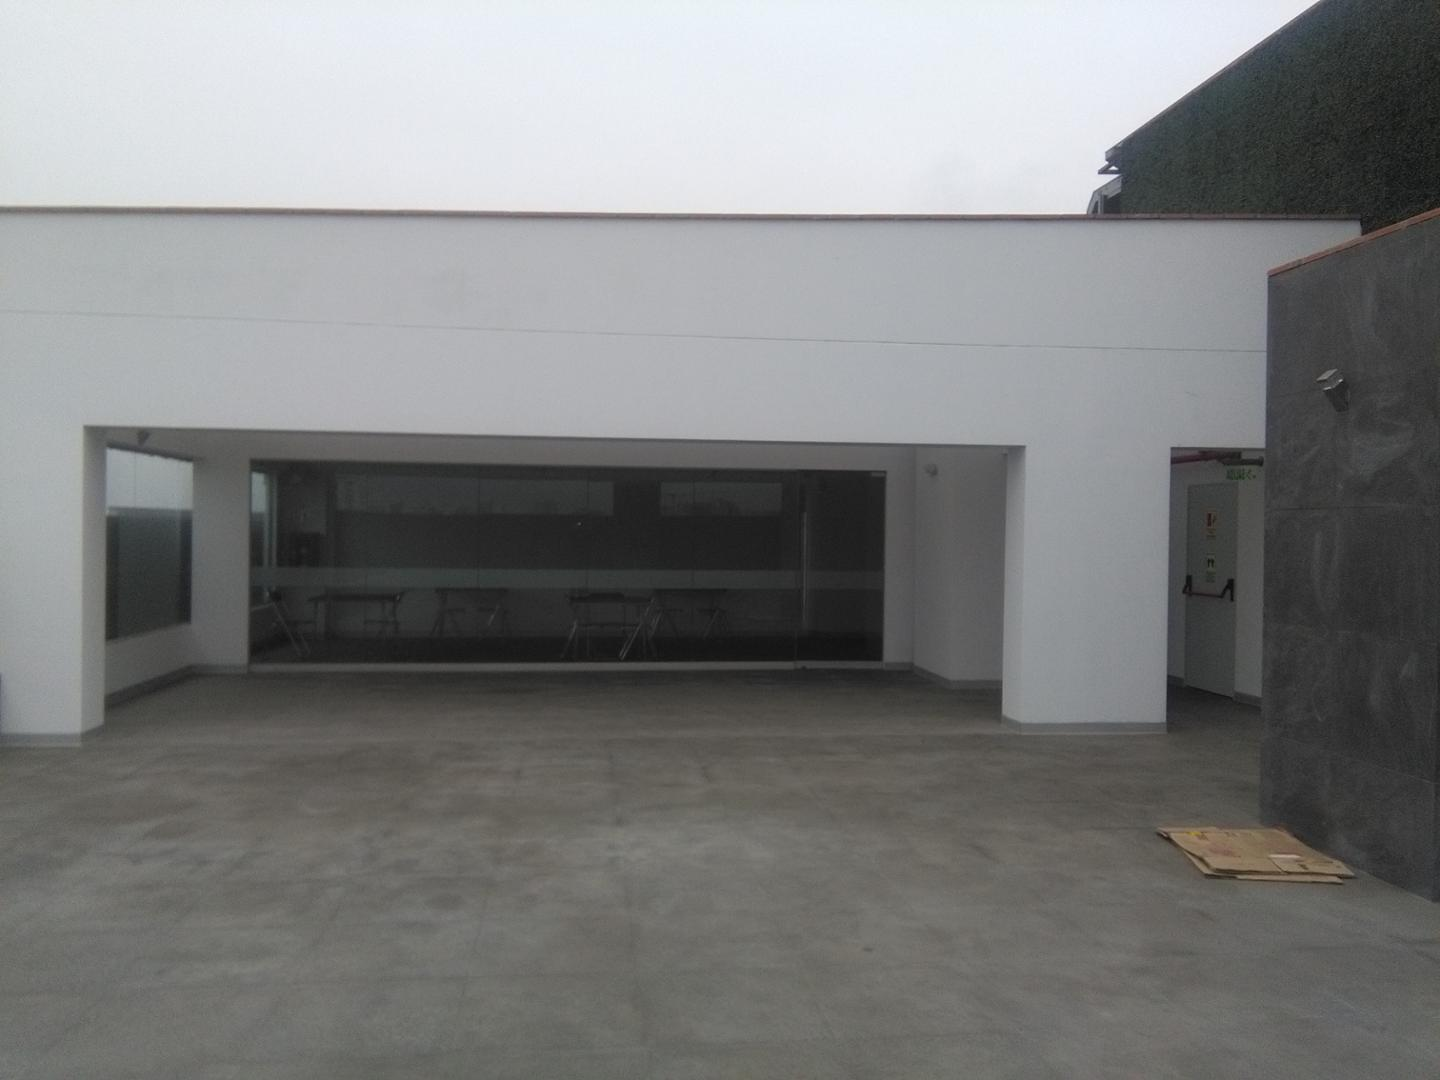 Local industrial en Venta Miraflores, Lima